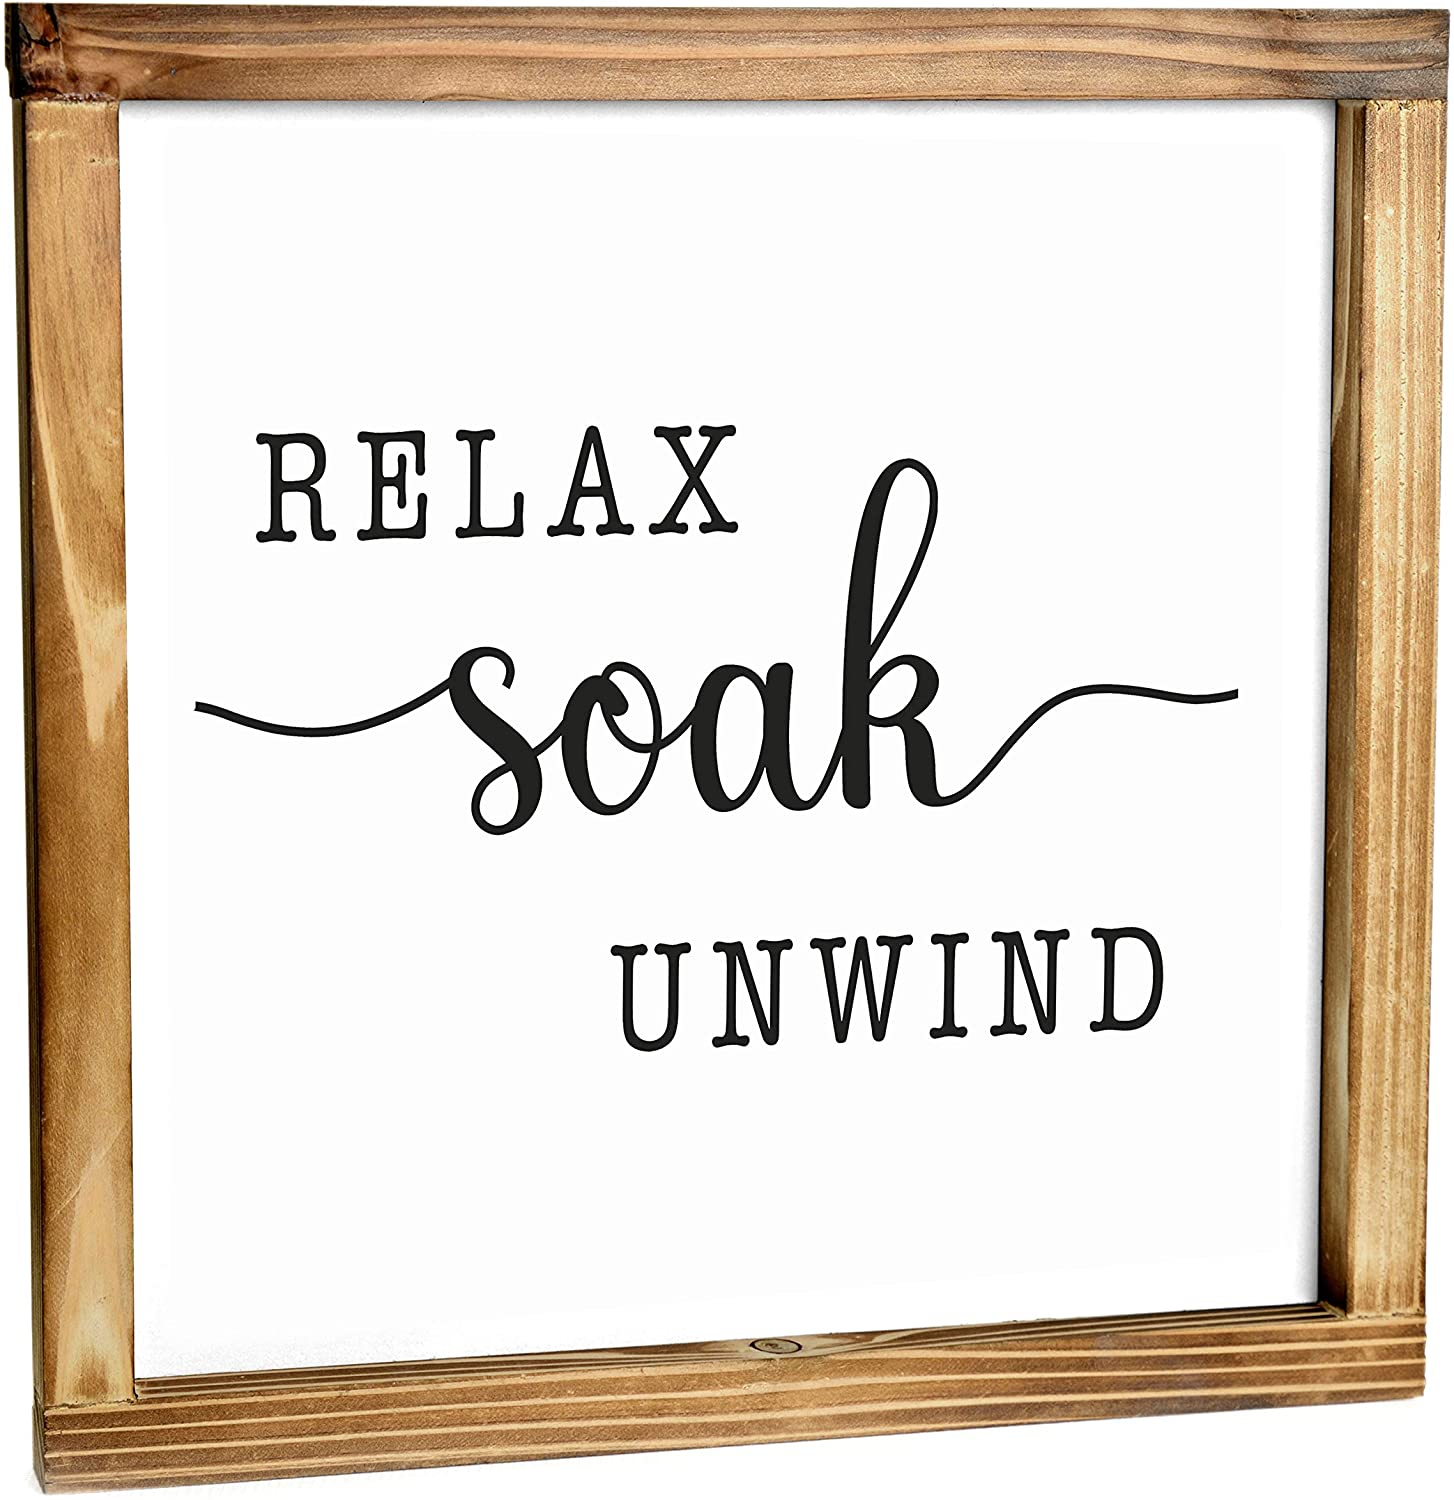 Relax Soak Unwind Sign - Modern Farmhouse Decor For The Home Sign - Wall Decorations For Living Room, Farmhouse Wall Decor, Rustic Home Decor, Cute Room Decor With Solid Wood Frame - 12x12 Inch